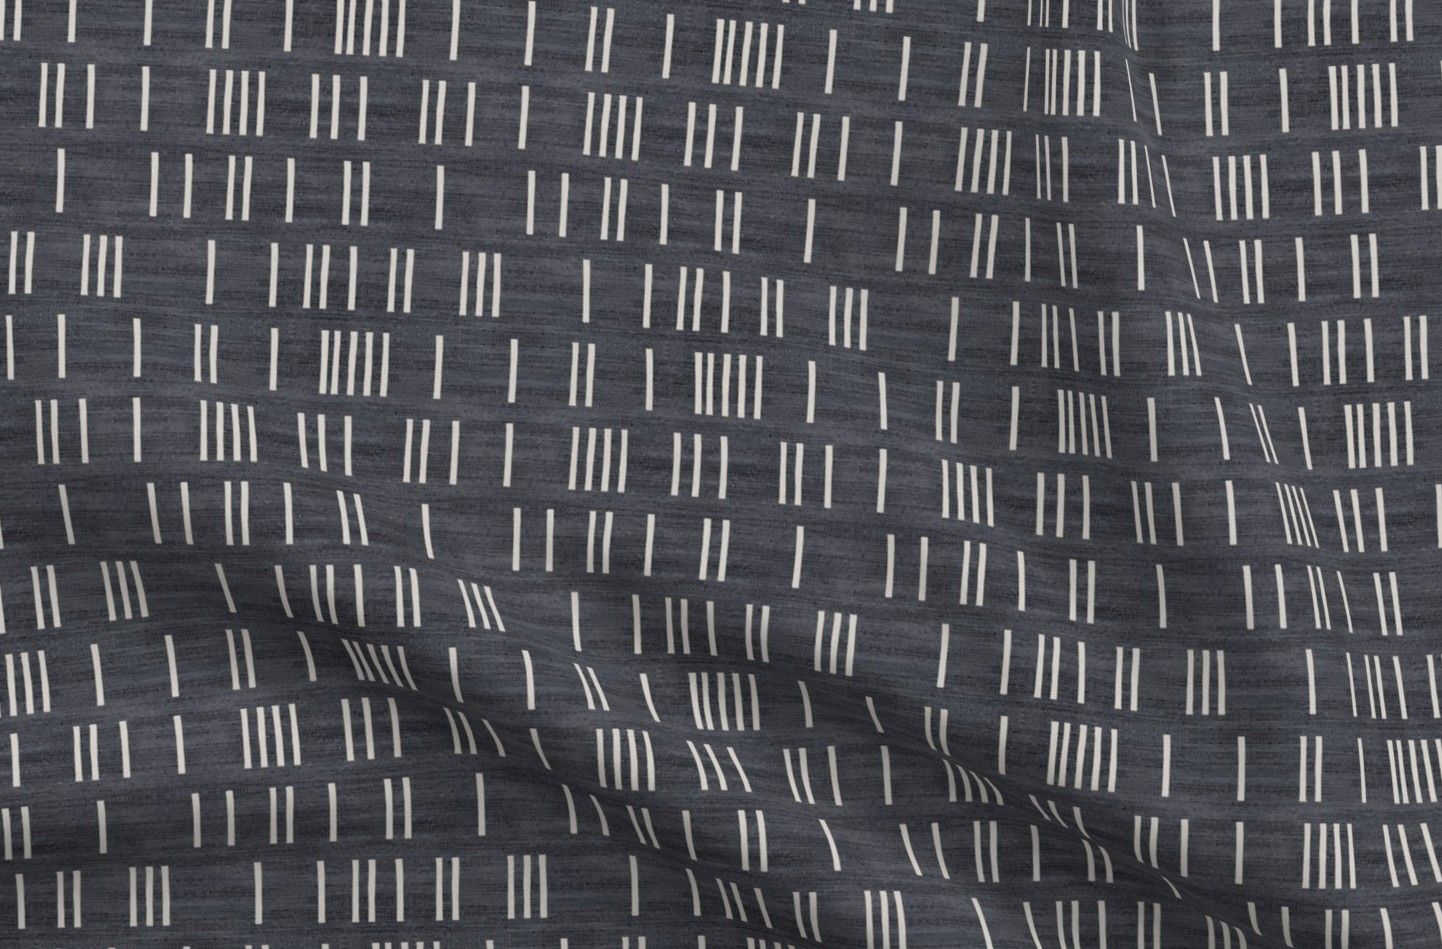 Mud Cloth Cotton Fabric By the Yard Denim_Line_Mud_Cloth Minimalist Tribal Ethnic Geometric Simple Lines Black Woven Holli Zollinger Faded Geo  By Spoonflower